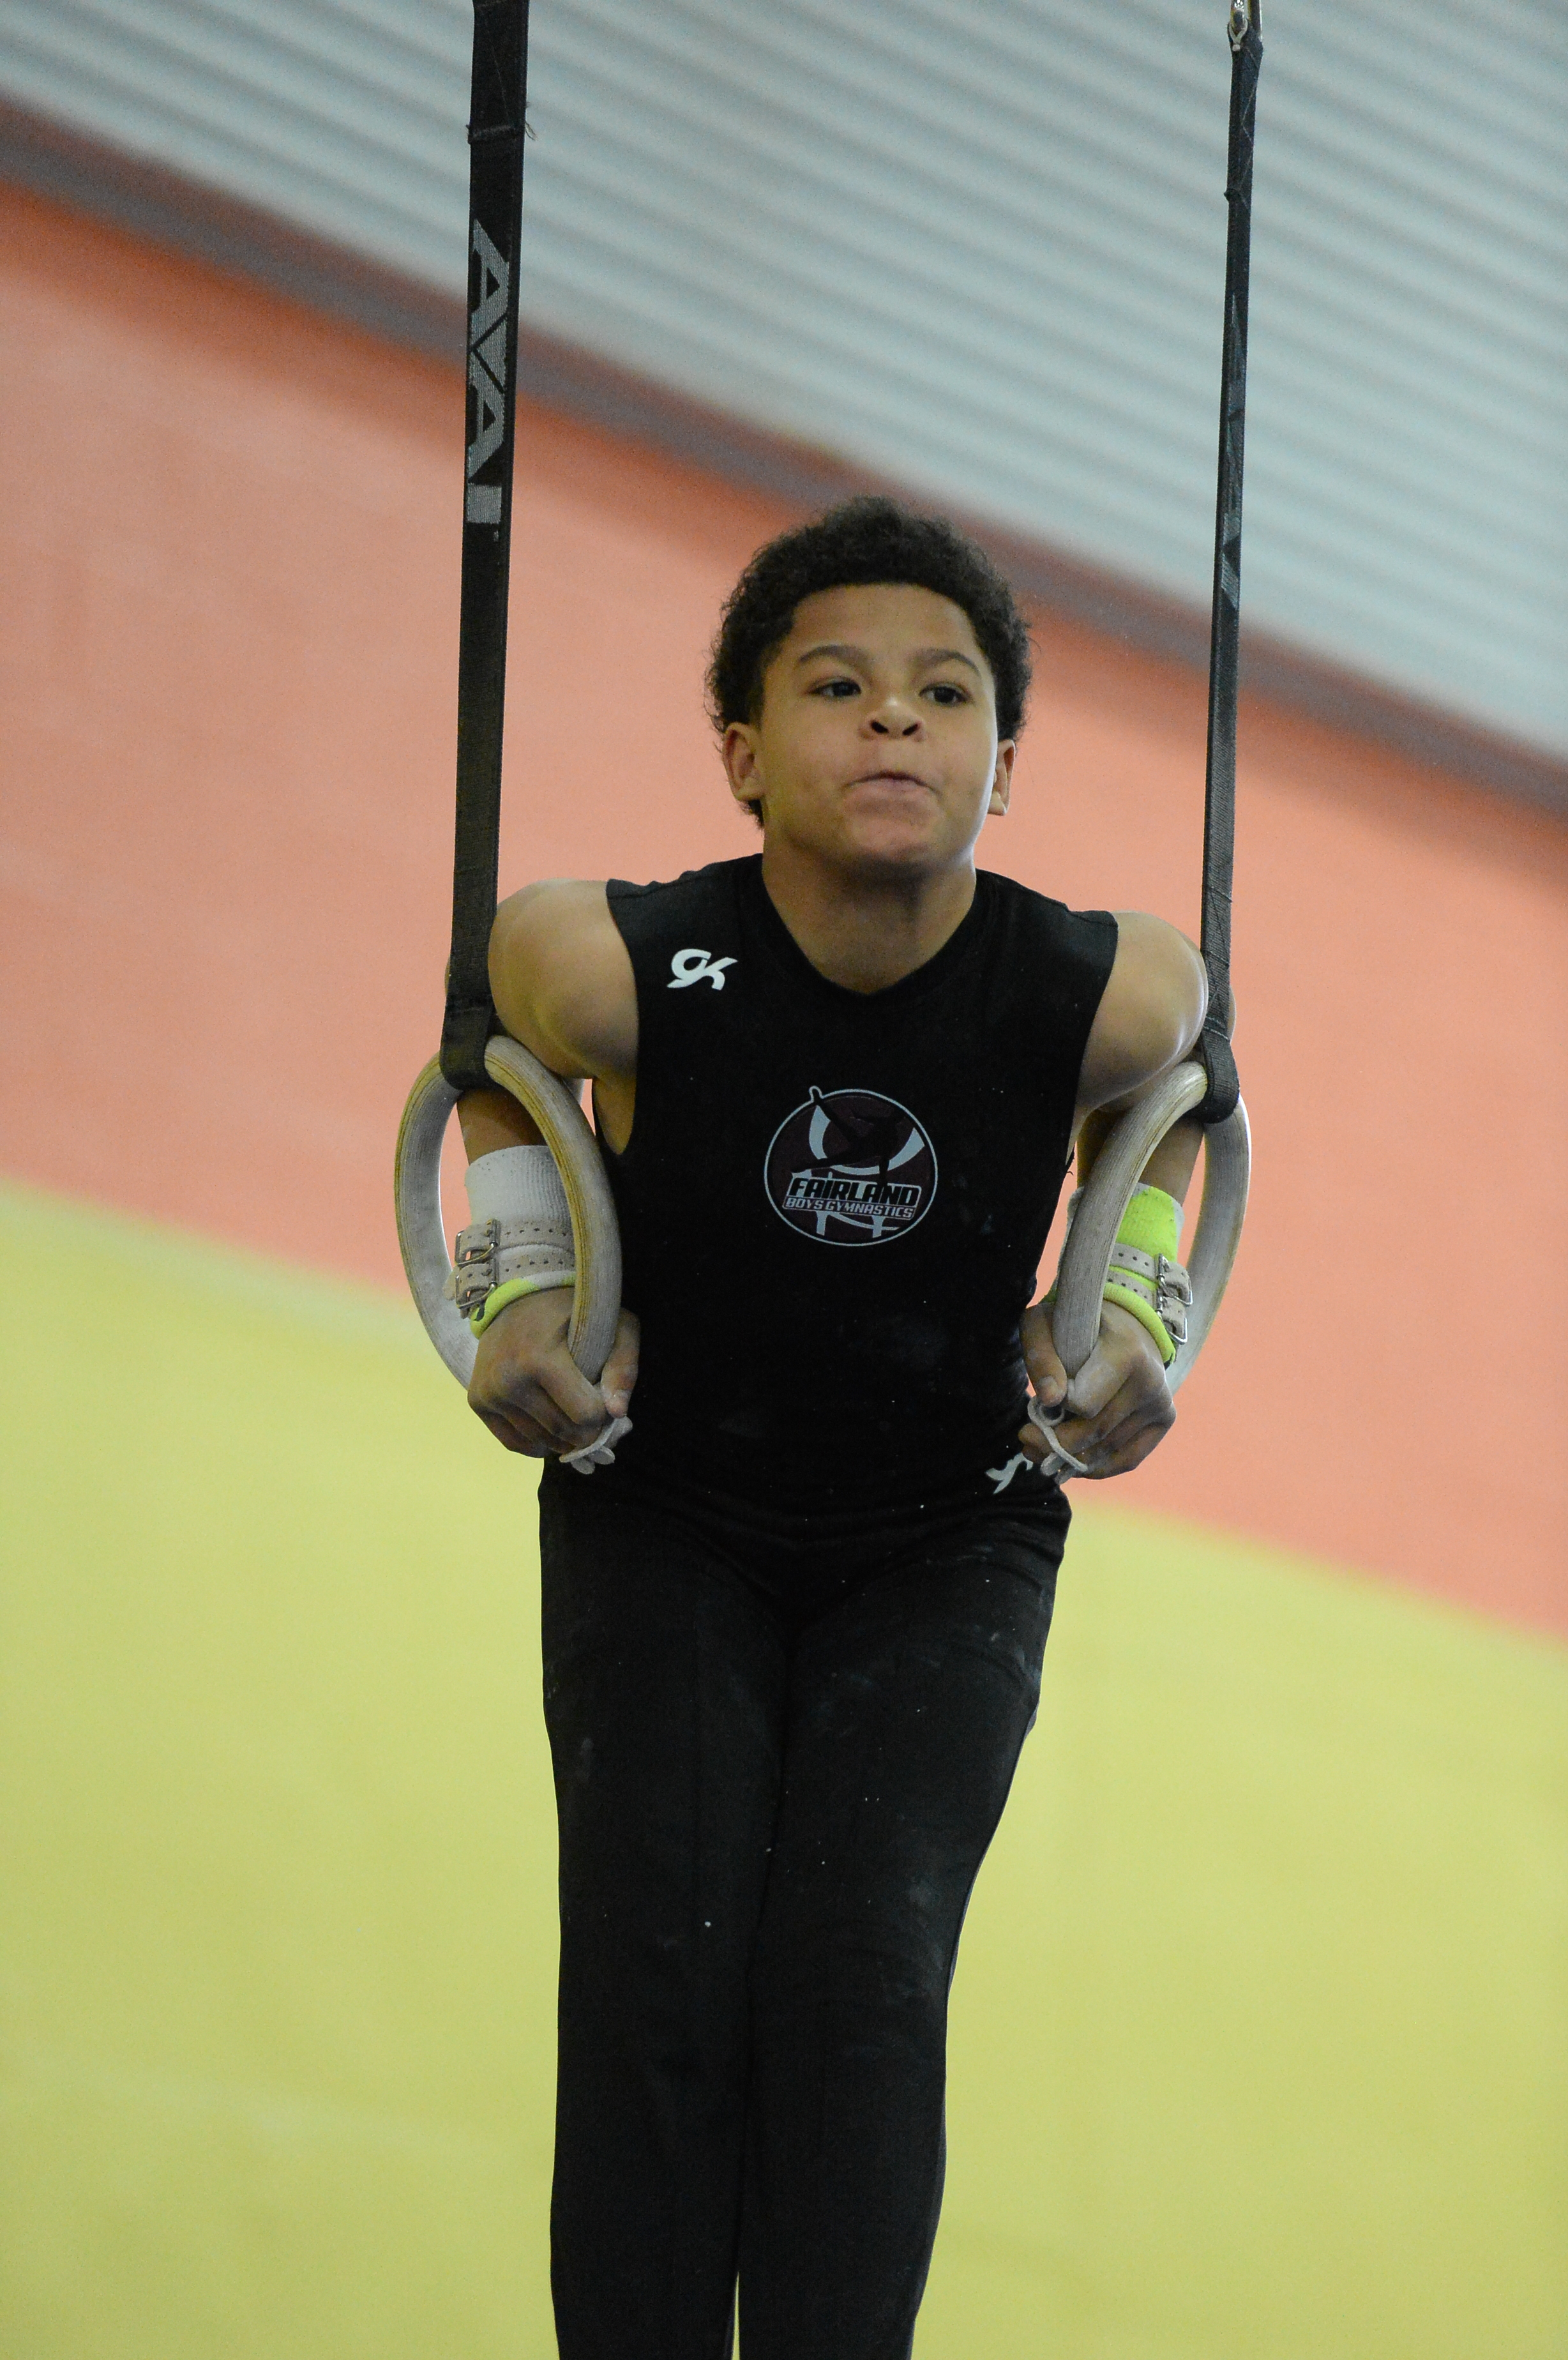 2016 Regionals at Sportsplex: Landover, MD